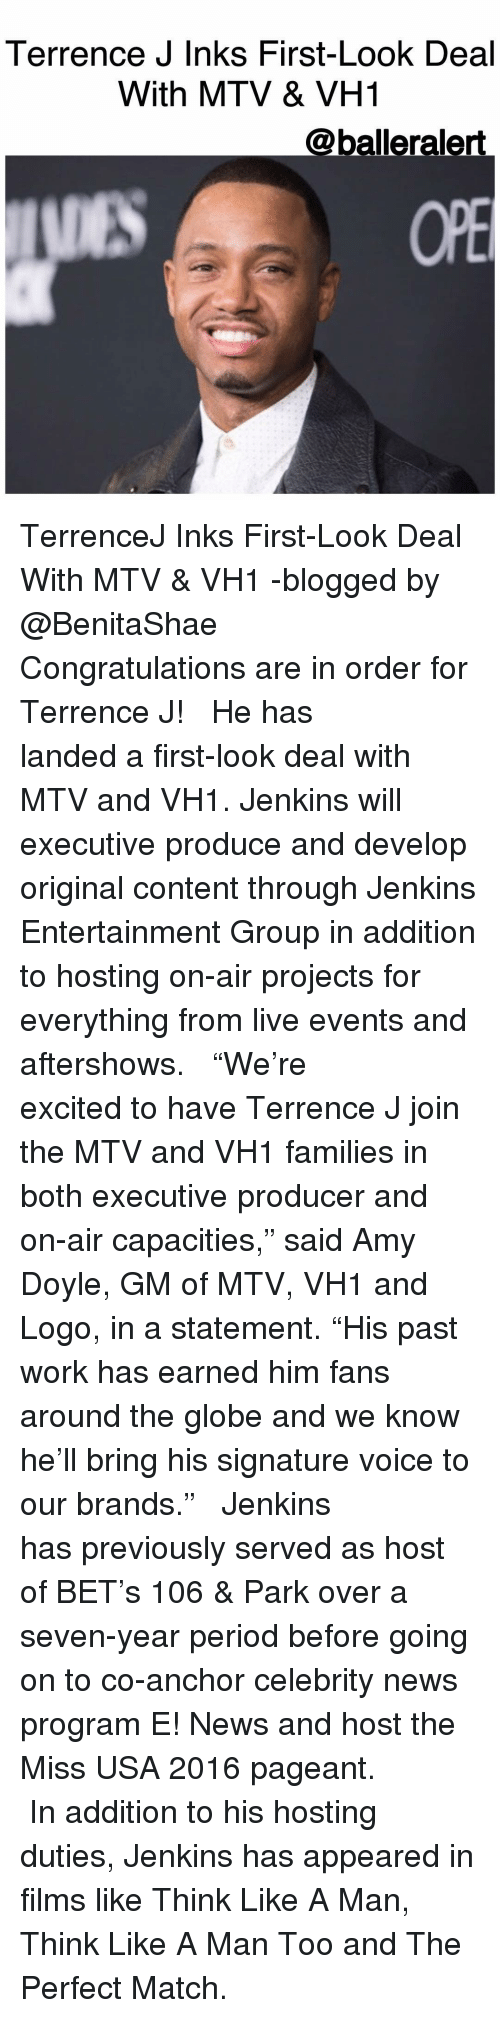 """miss usa: Terrence J Inks First-Look Deal  With MTV & VH1  @balleralert TerrenceJ Inks First-Look Deal With MTV & VH1 -blogged by @BenitaShae ⠀⠀⠀⠀⠀⠀⠀ ⠀⠀⠀⠀⠀⠀⠀ Congratulations are in order for Terrence J! ⠀⠀⠀⠀⠀⠀⠀ ⠀⠀⠀⠀⠀⠀⠀ He has landed a first-look deal with MTV and VH1. Jenkins will executive produce and develop original content through Jenkins Entertainment Group in addition to hosting on-air projects for everything from live events and aftershows. ⠀⠀⠀⠀⠀⠀⠀ ⠀⠀⠀⠀⠀⠀⠀ """"We're excited to have Terrence J join the MTV and VH1 families in both executive producer and on-air capacities,"""" said Amy Doyle, GM of MTV, VH1 and Logo, in a statement. """"His past work has earned him fans around the globe and we know he'll bring his signature voice to our brands."""" ⠀⠀⠀⠀⠀⠀⠀ ⠀⠀⠀⠀⠀⠀⠀ Jenkins has previously served as host of BET's 106 & Park over a seven-year period before going on to co-anchor celebrity news program E! News and host the Miss USA 2016 pageant. ⠀⠀⠀⠀⠀⠀⠀ ⠀⠀⠀⠀⠀⠀⠀ In addition to his hosting duties, Jenkins has appeared in films like Think Like A Man, Think Like A Man Too and The Perfect Match."""